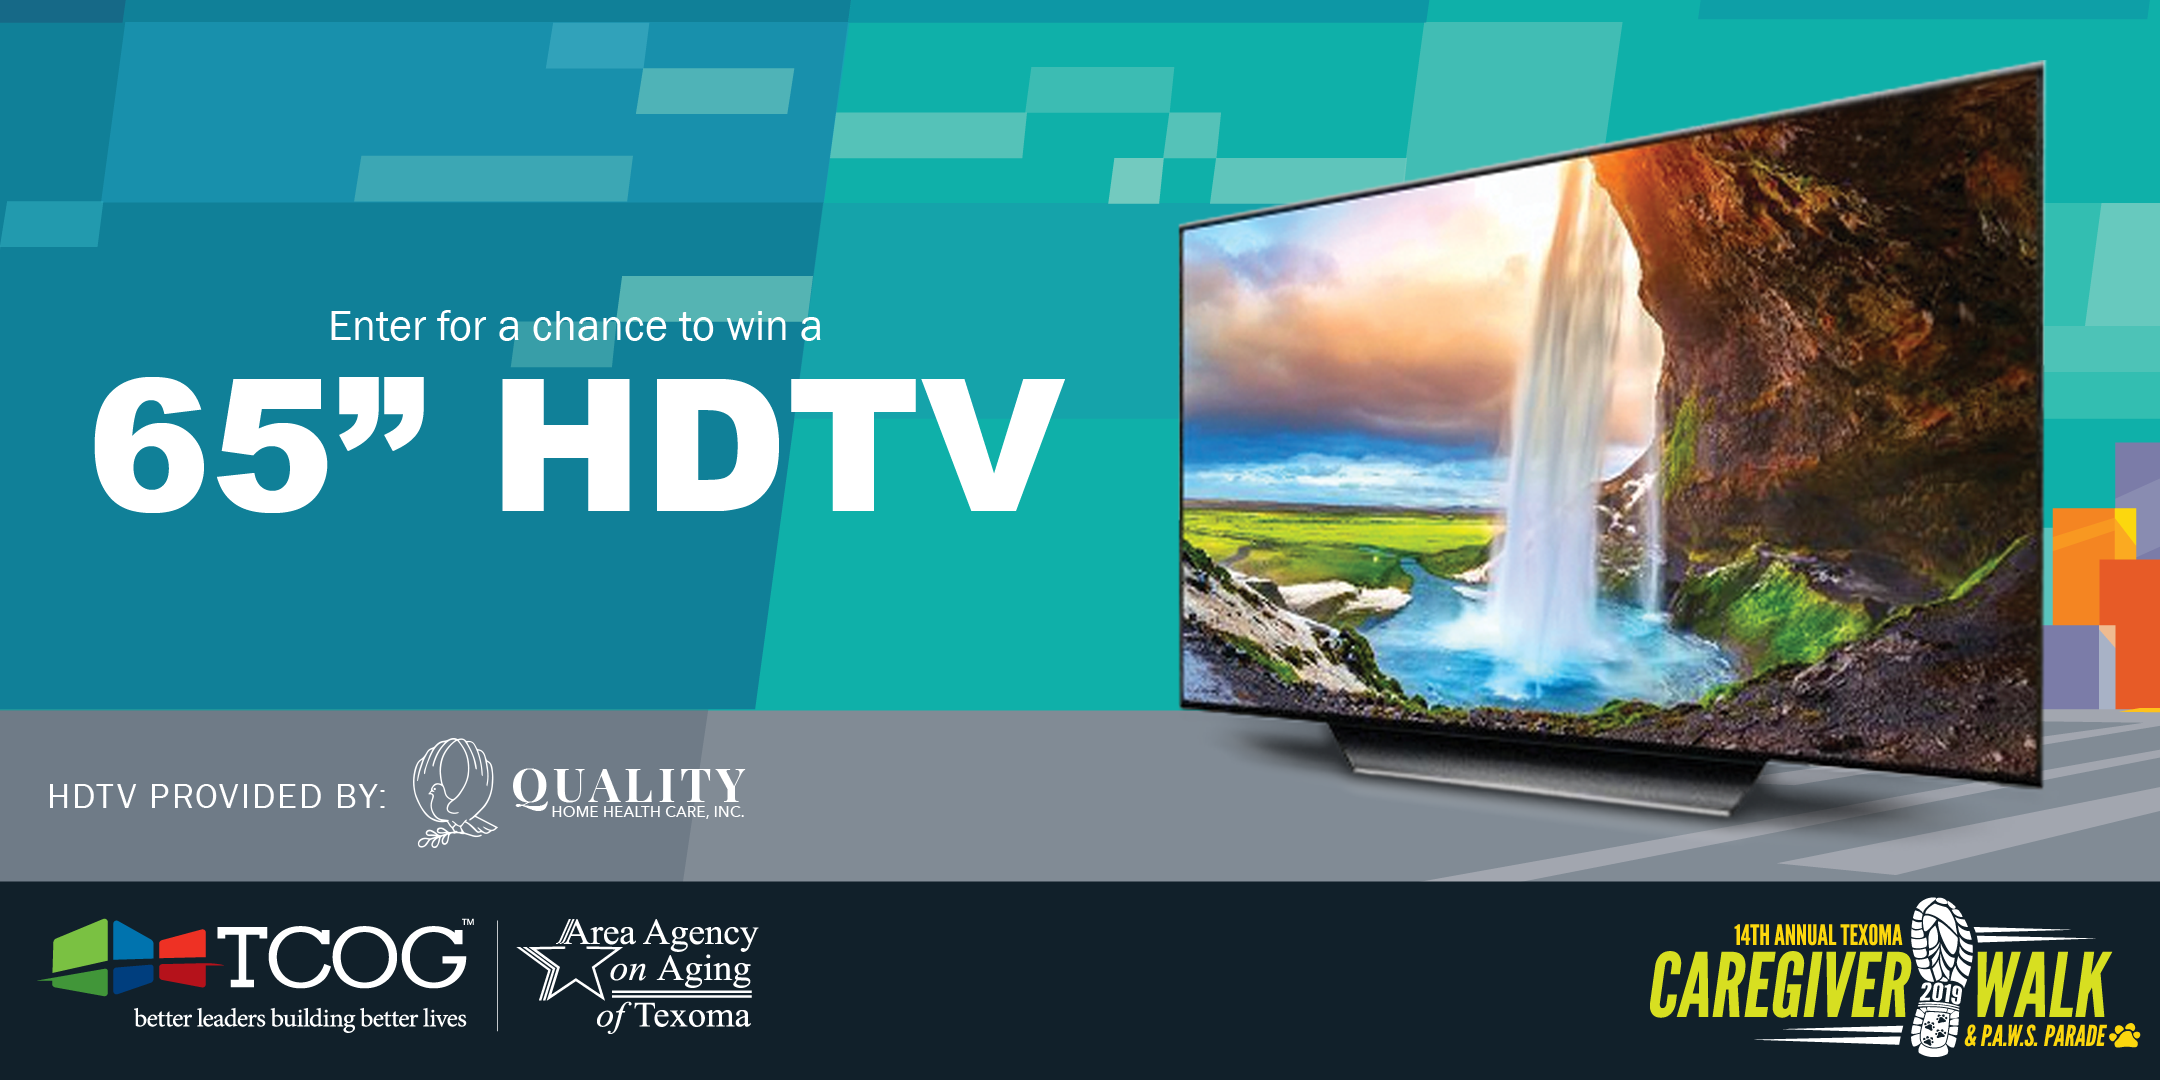 HDTV generously provided by Quality Home Healthcare, Inc.